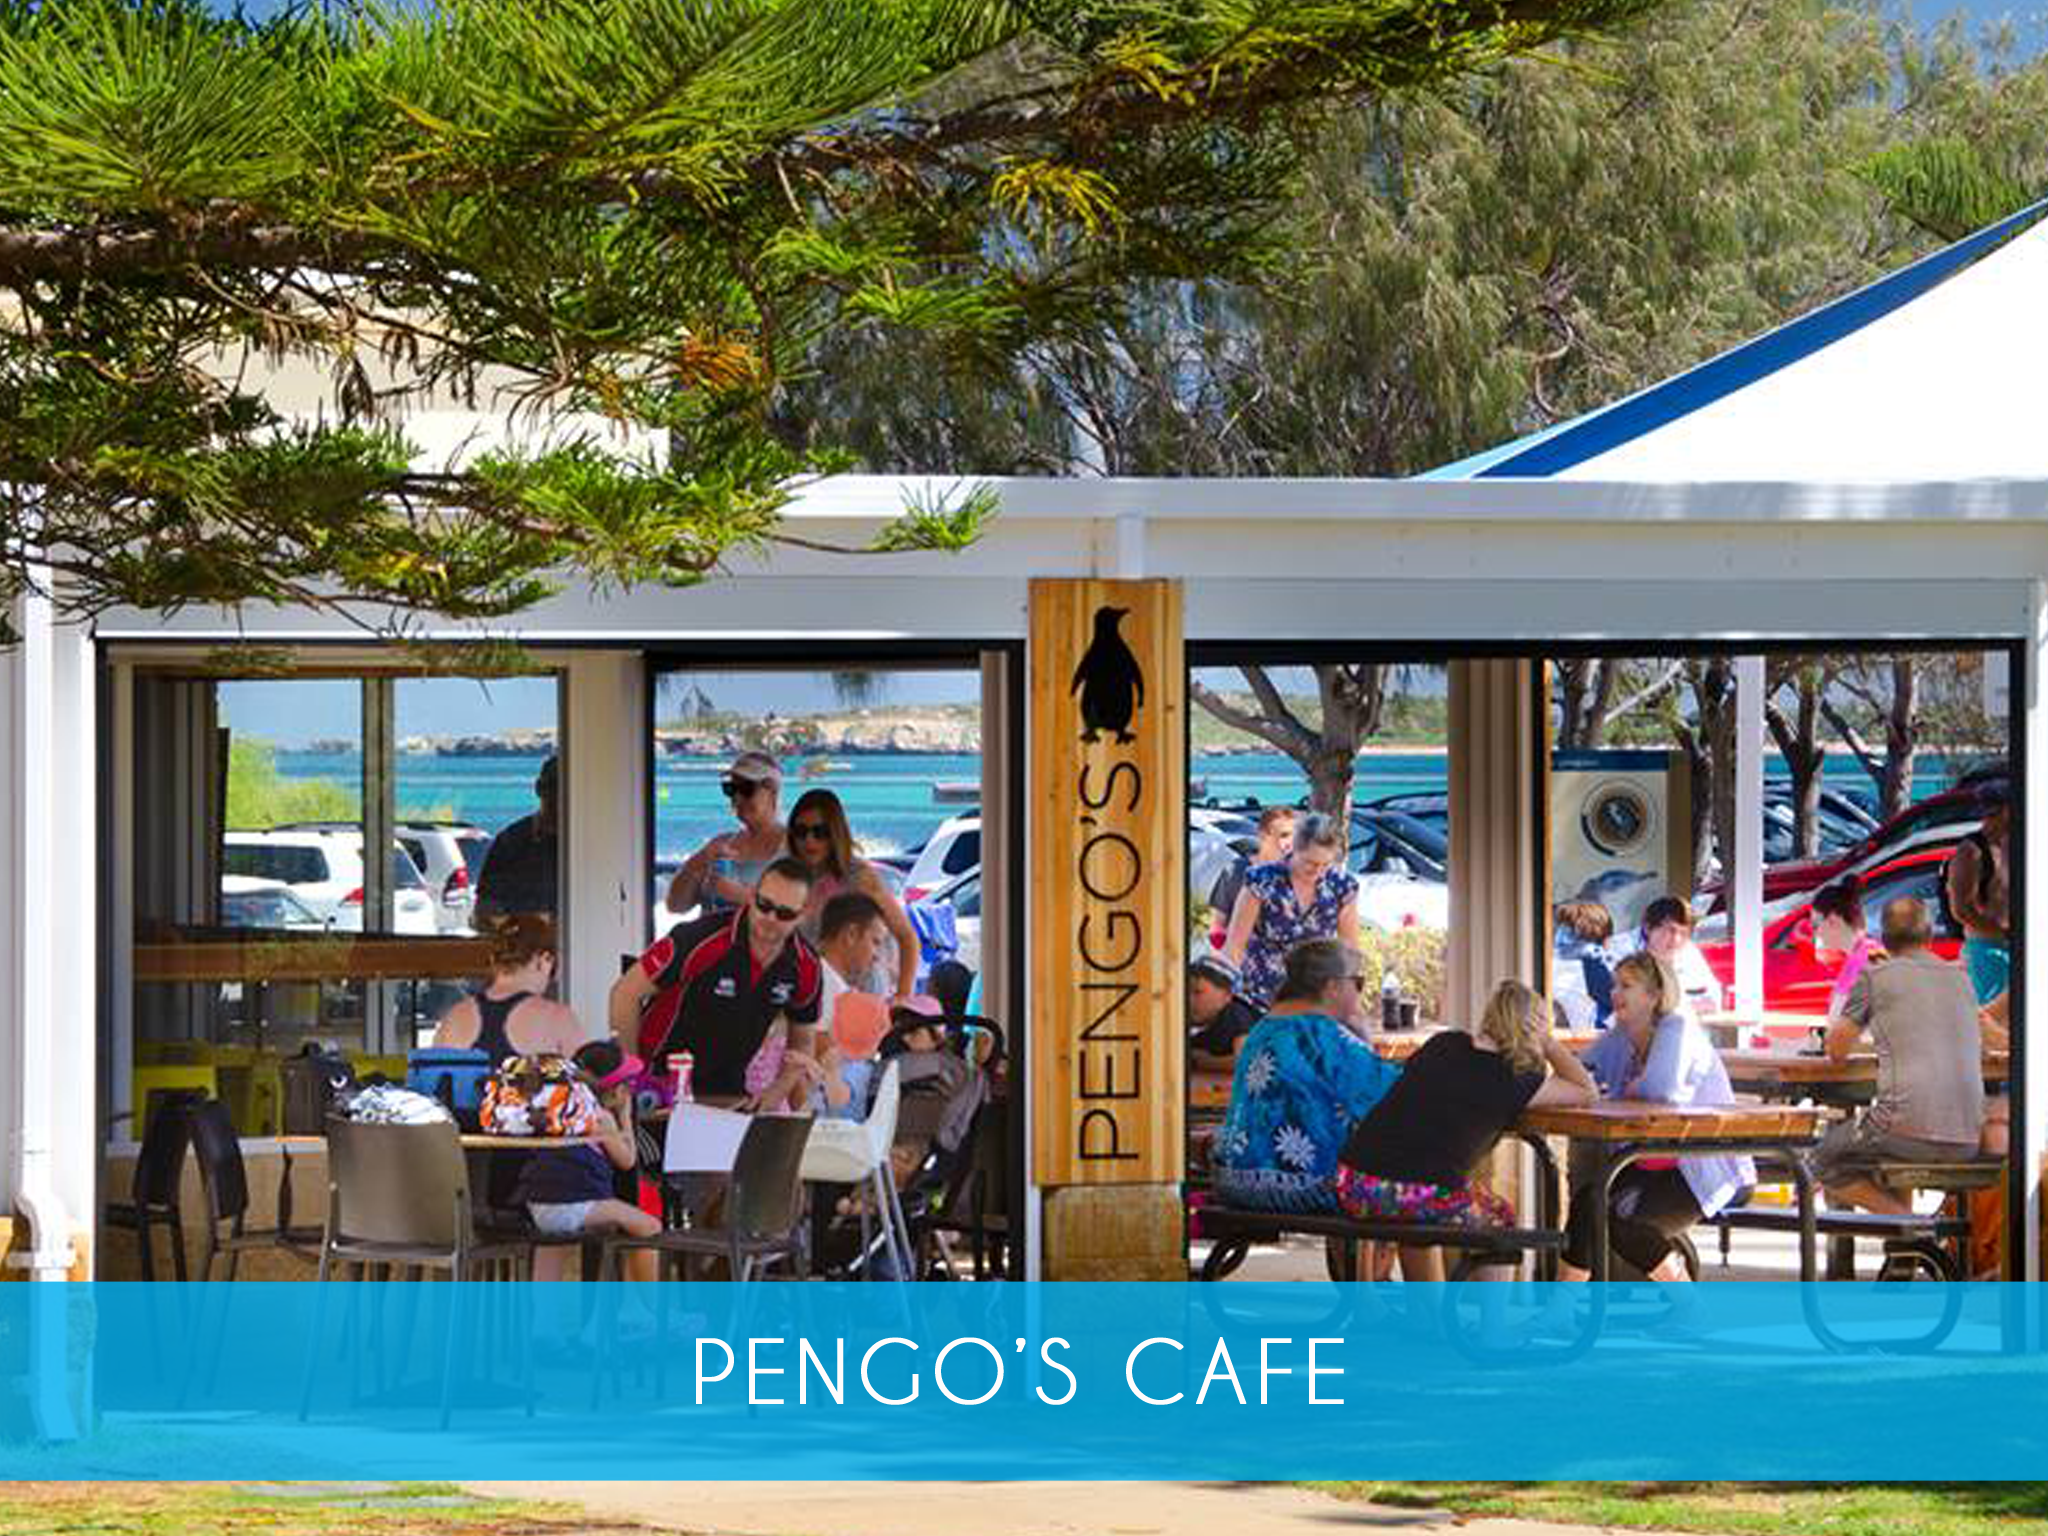 pengos cafe  Open daily 8am to 4.30pm great coffee & cakes, gourmet burgers, awesome fish & chips & fresh salads. Located right next door to Rockingham Wild Encounters, Pengos is the ideal place for a quick bite to eat for breakfast or lunch, before or after your visit to Penguin Island.    MORE INFO